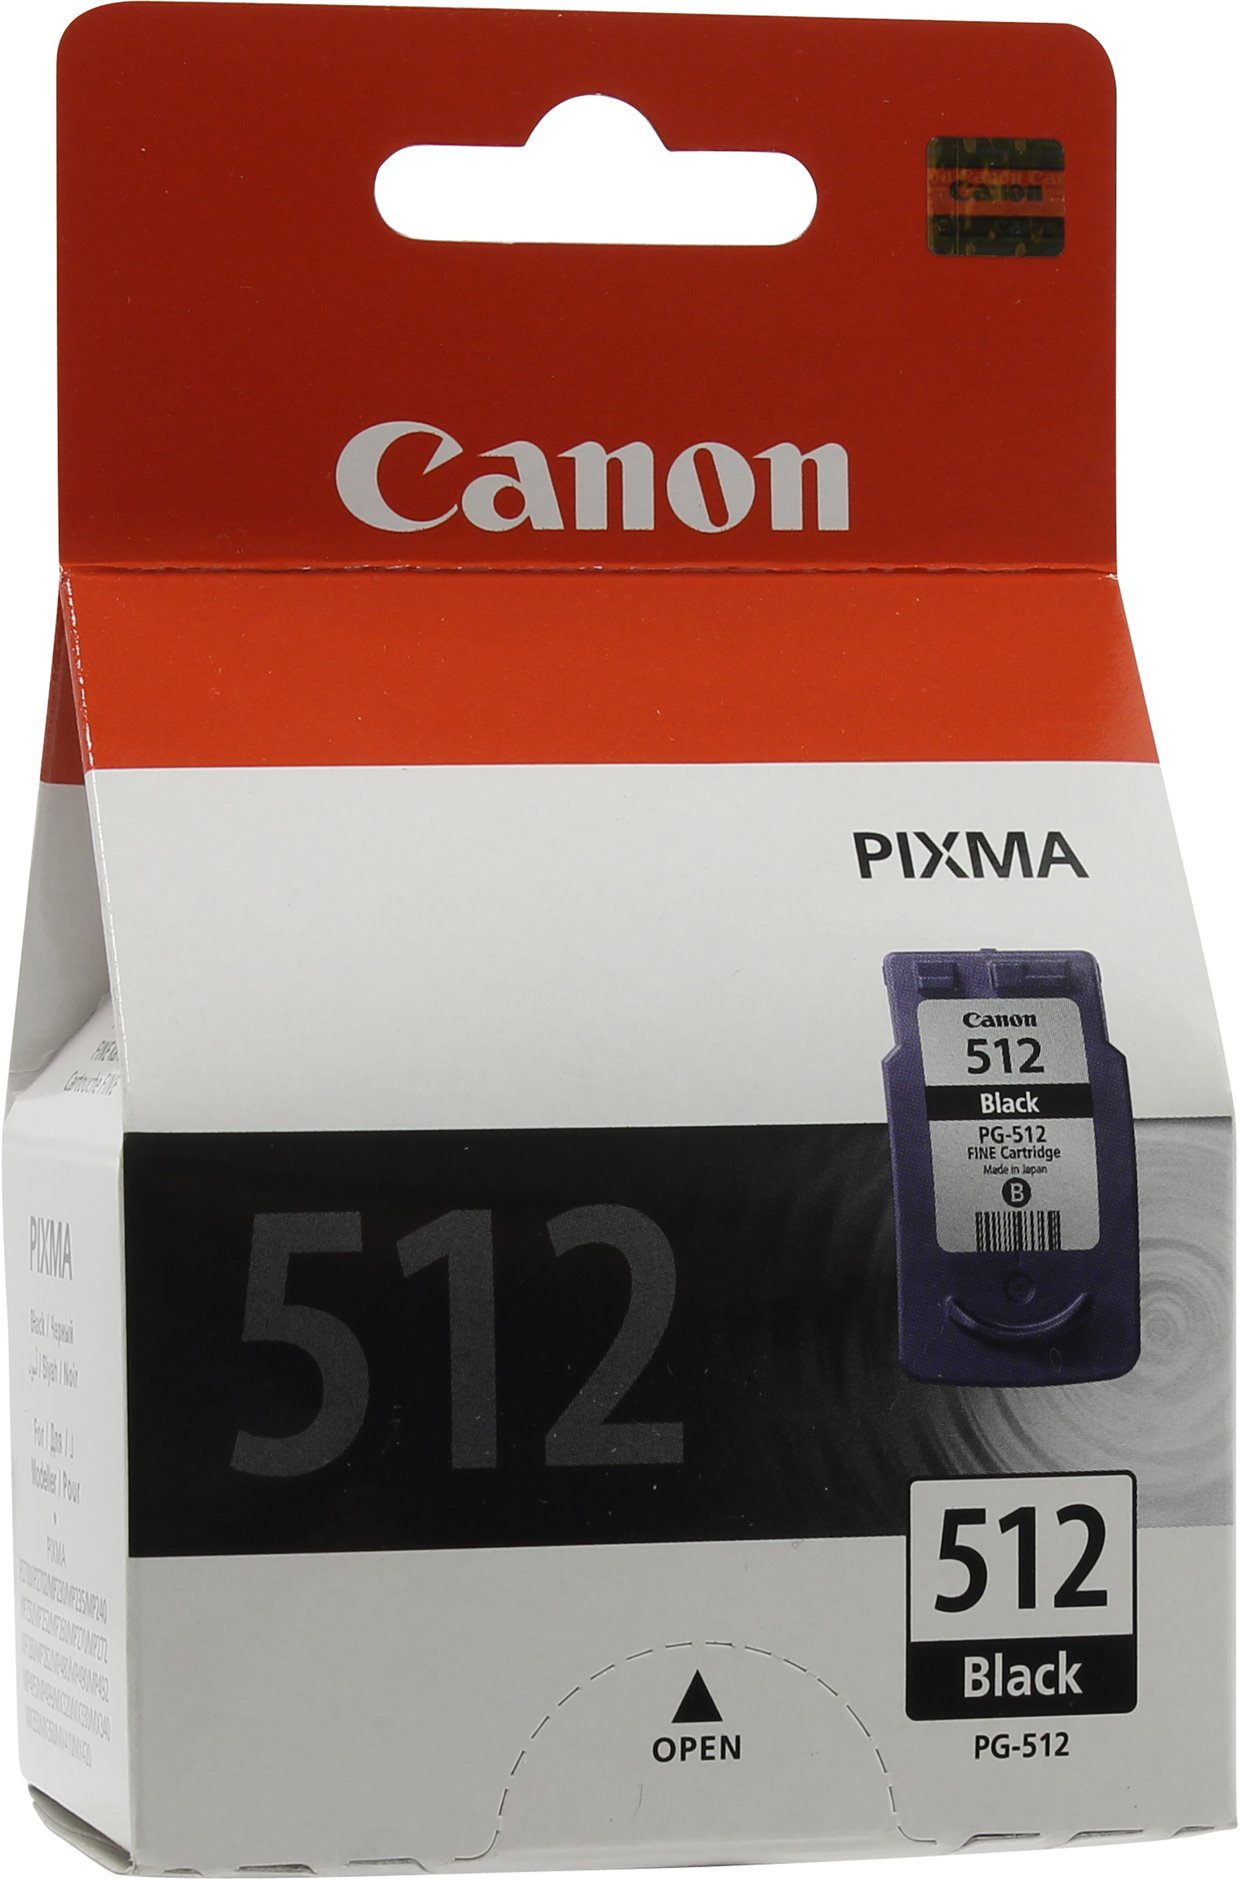 Canon PG-512 (2969B007) - картридж для Canon PIXMA MP240/250/260/480 (Black)